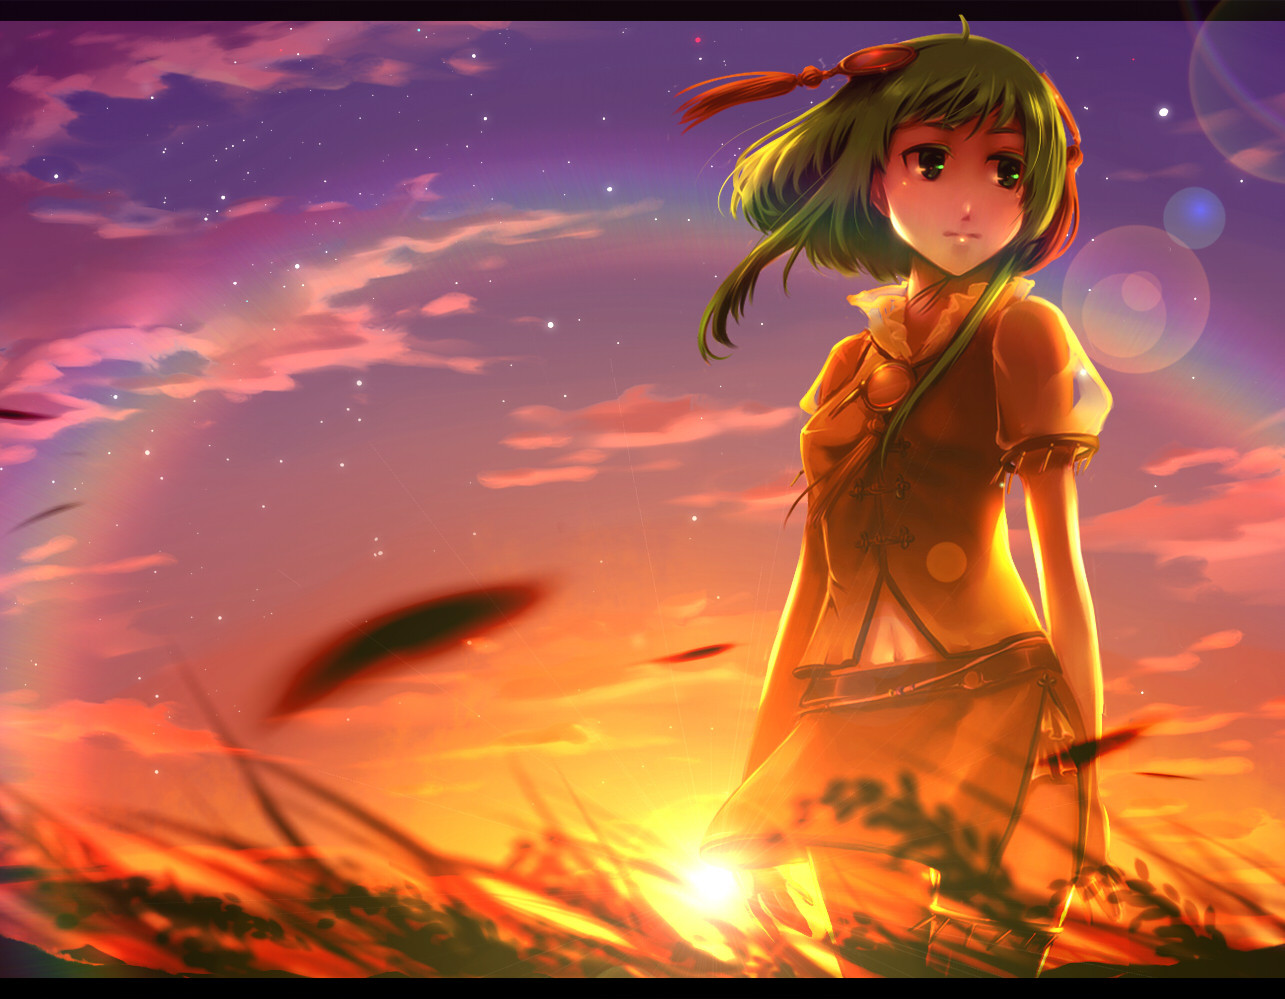 Gumi-at-sunset-channeling-Ranka-Lee-wallpaper-wp5806201